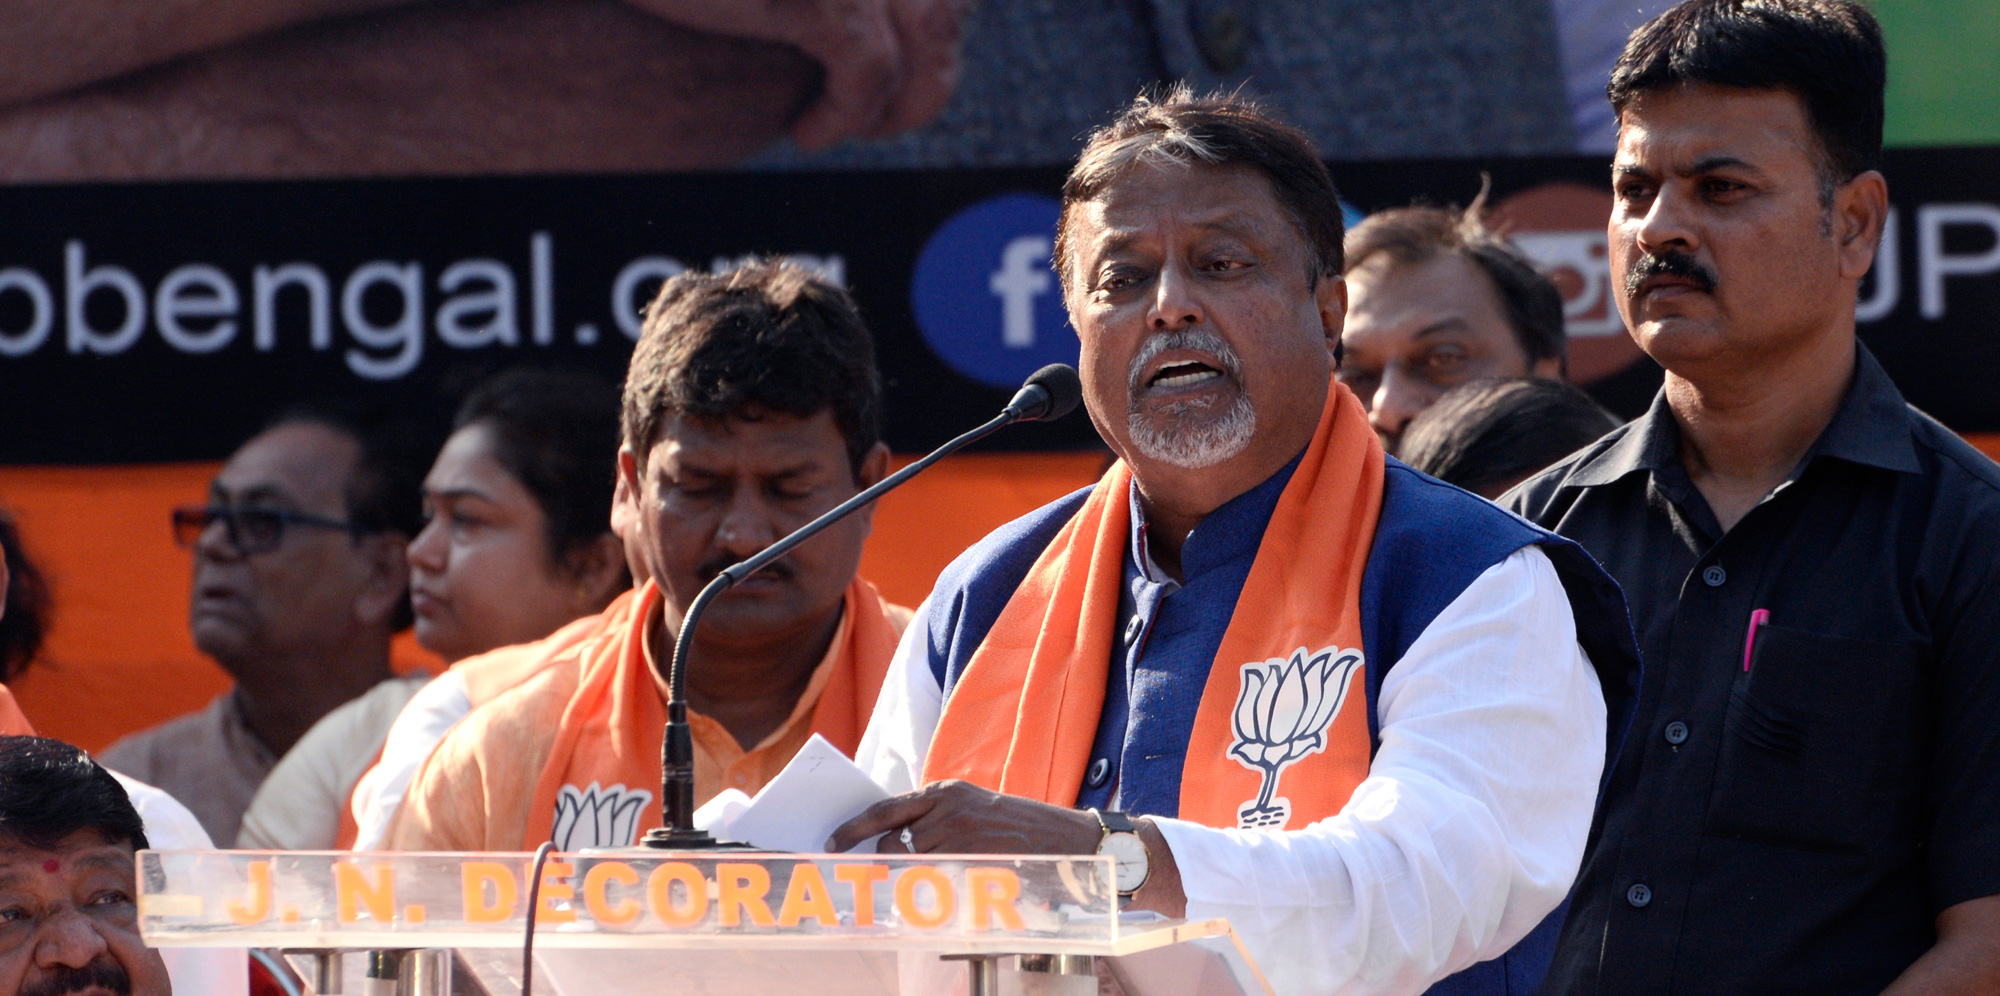 The high court on Tuesday extended by eight weeks the time limit of its interim order that had restrained police from arresting BJP leader Mukul Roy in connection with the murder of Trinamul Krishnaganj MLA Satyajit Biswas.